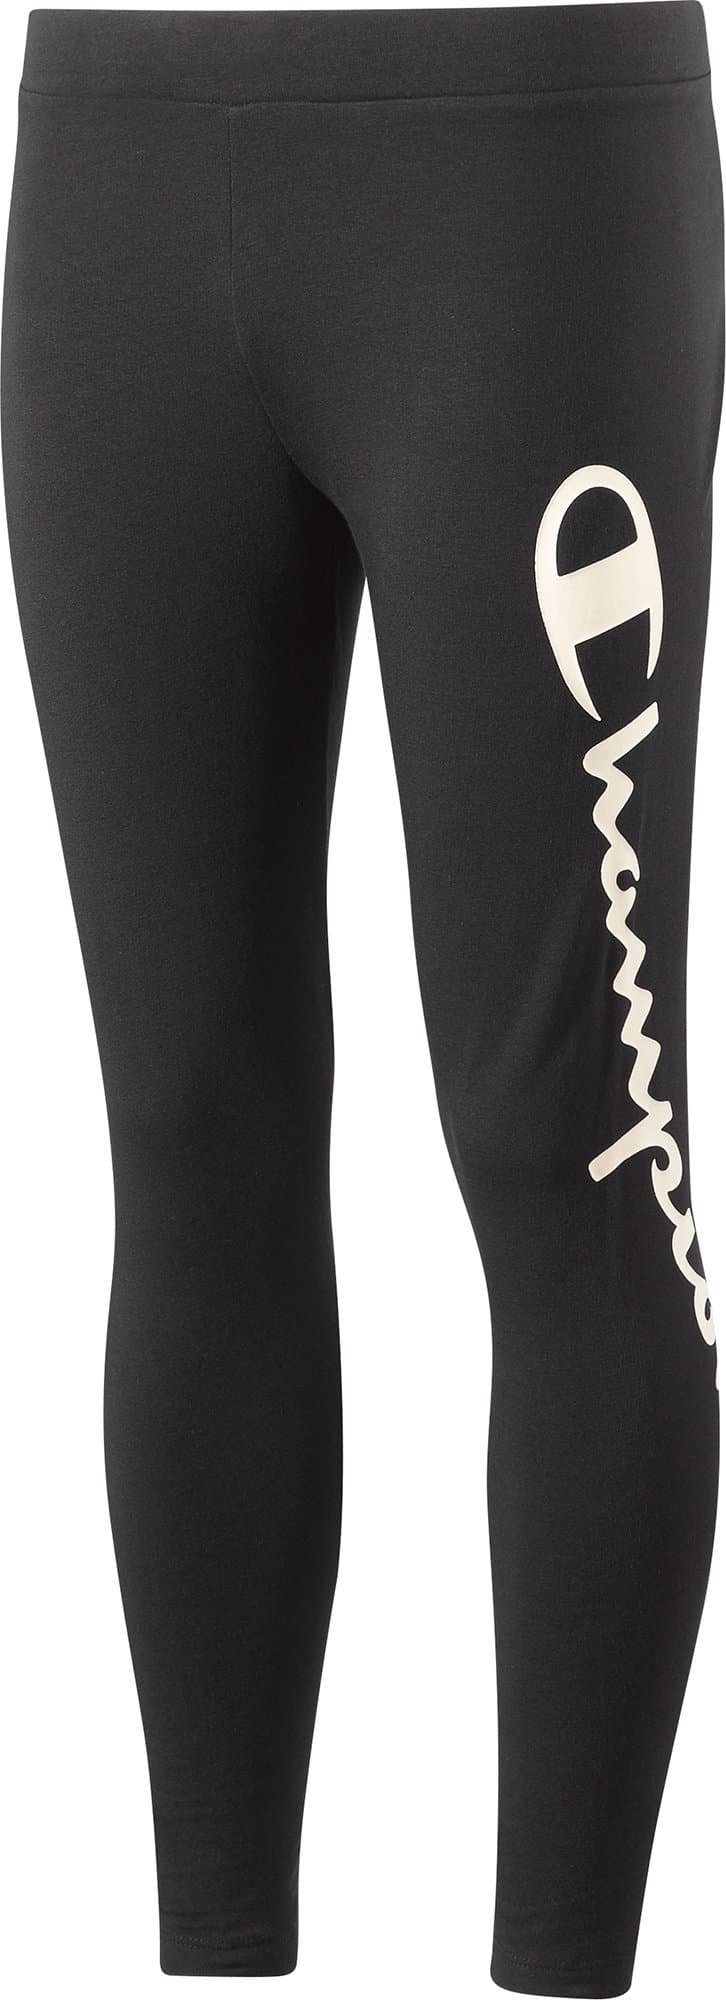 Champion Leggings Leggings pour fille